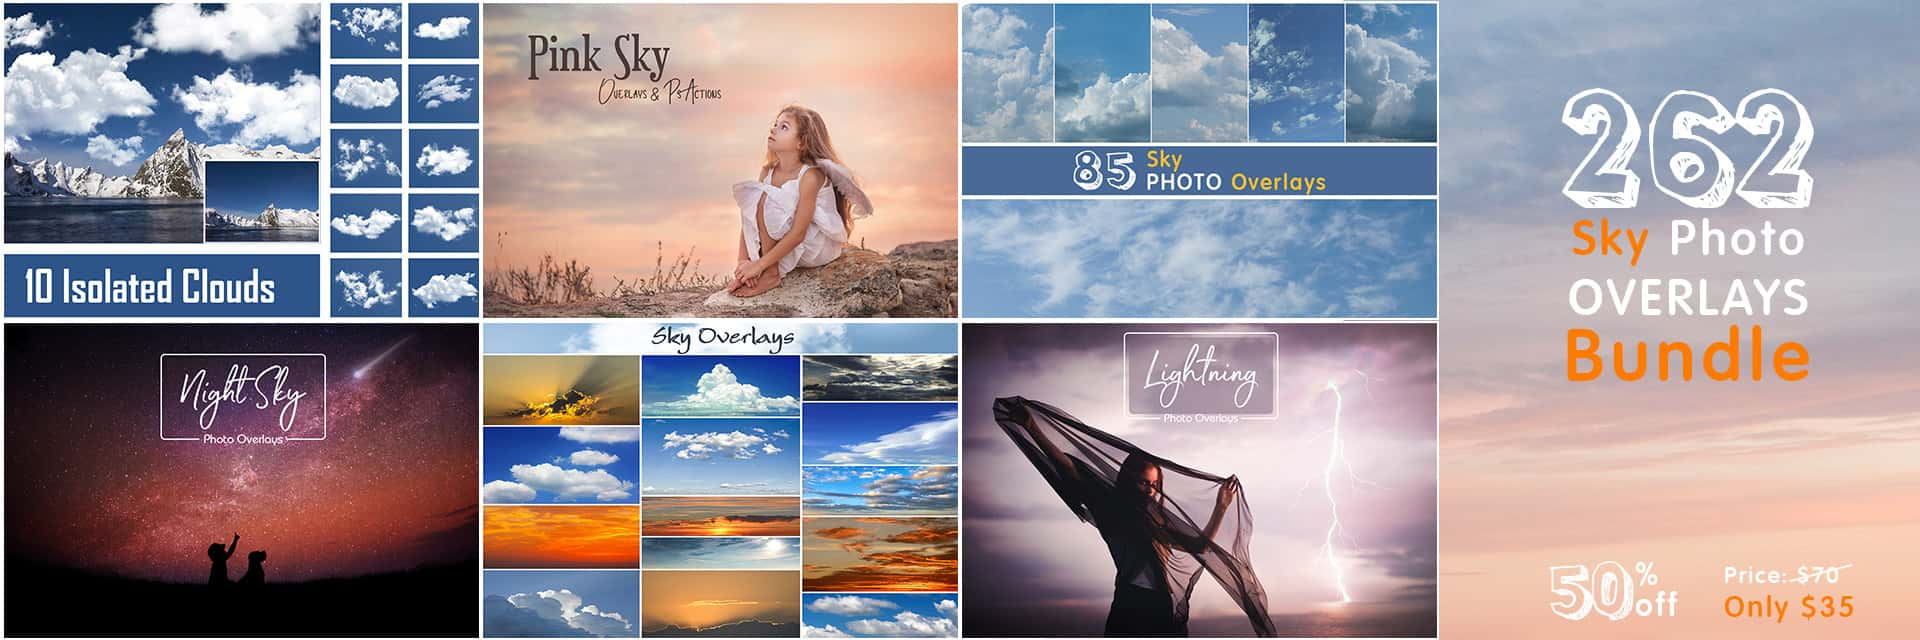 Sky bundle slider -